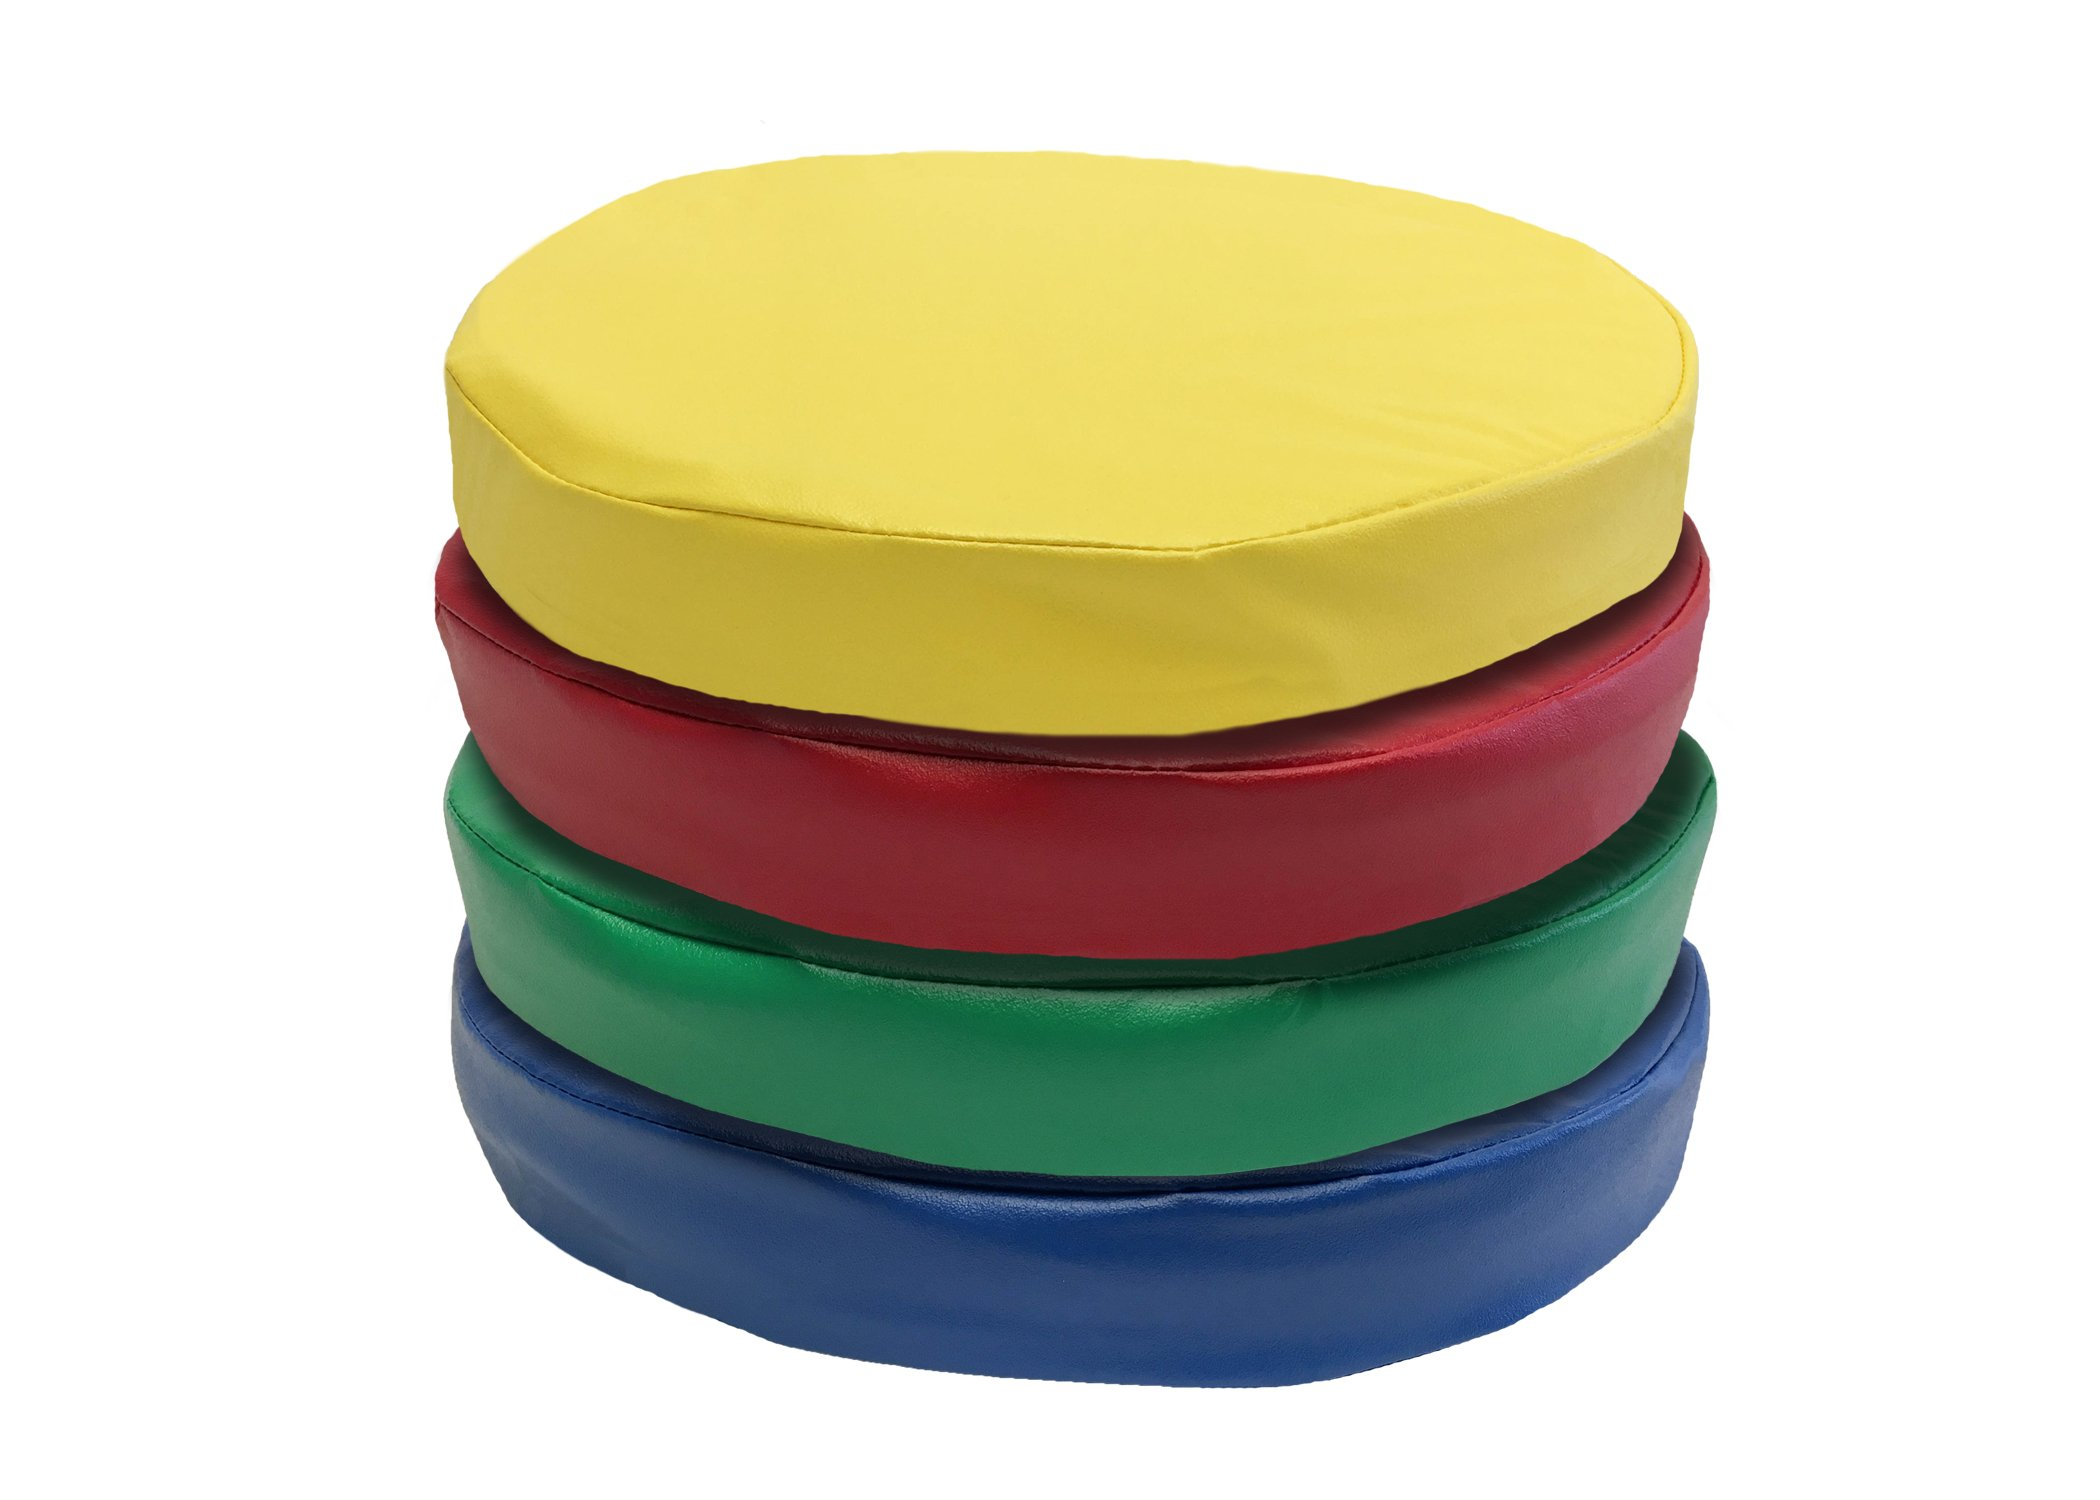 Kindermat Floor Disks/Seats, Story Time Cushions For School Or Home, 16'' Wide by 2'' Thick, 4 Pack with Yellow, Blue, Green, Red